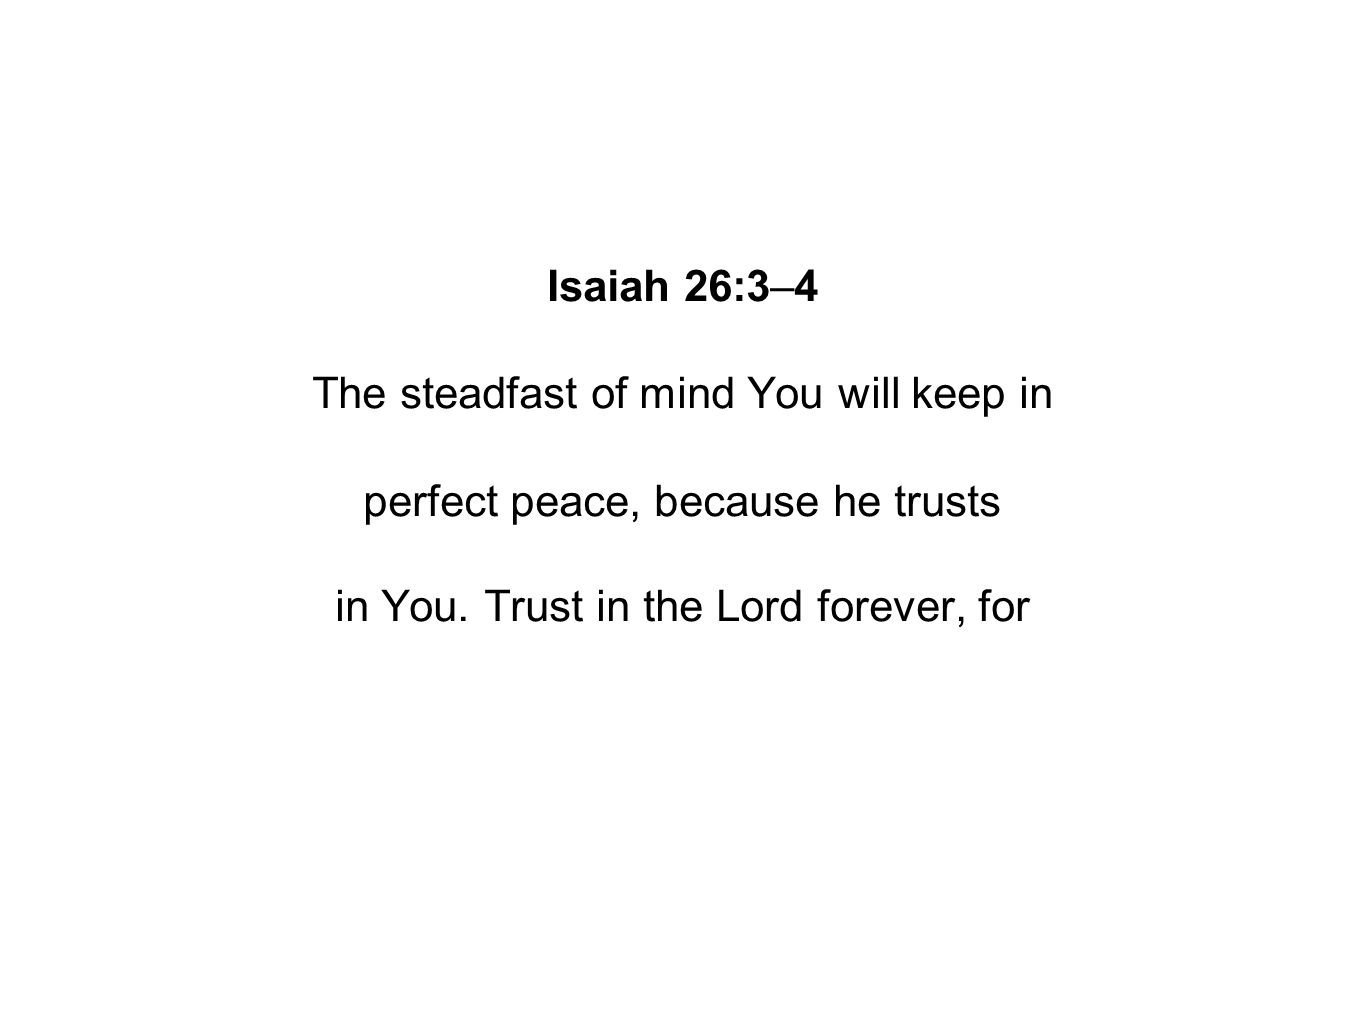 Isaiah 26:3–4 The steadfast of mind You will keep in perfect peace, because he trusts in You.